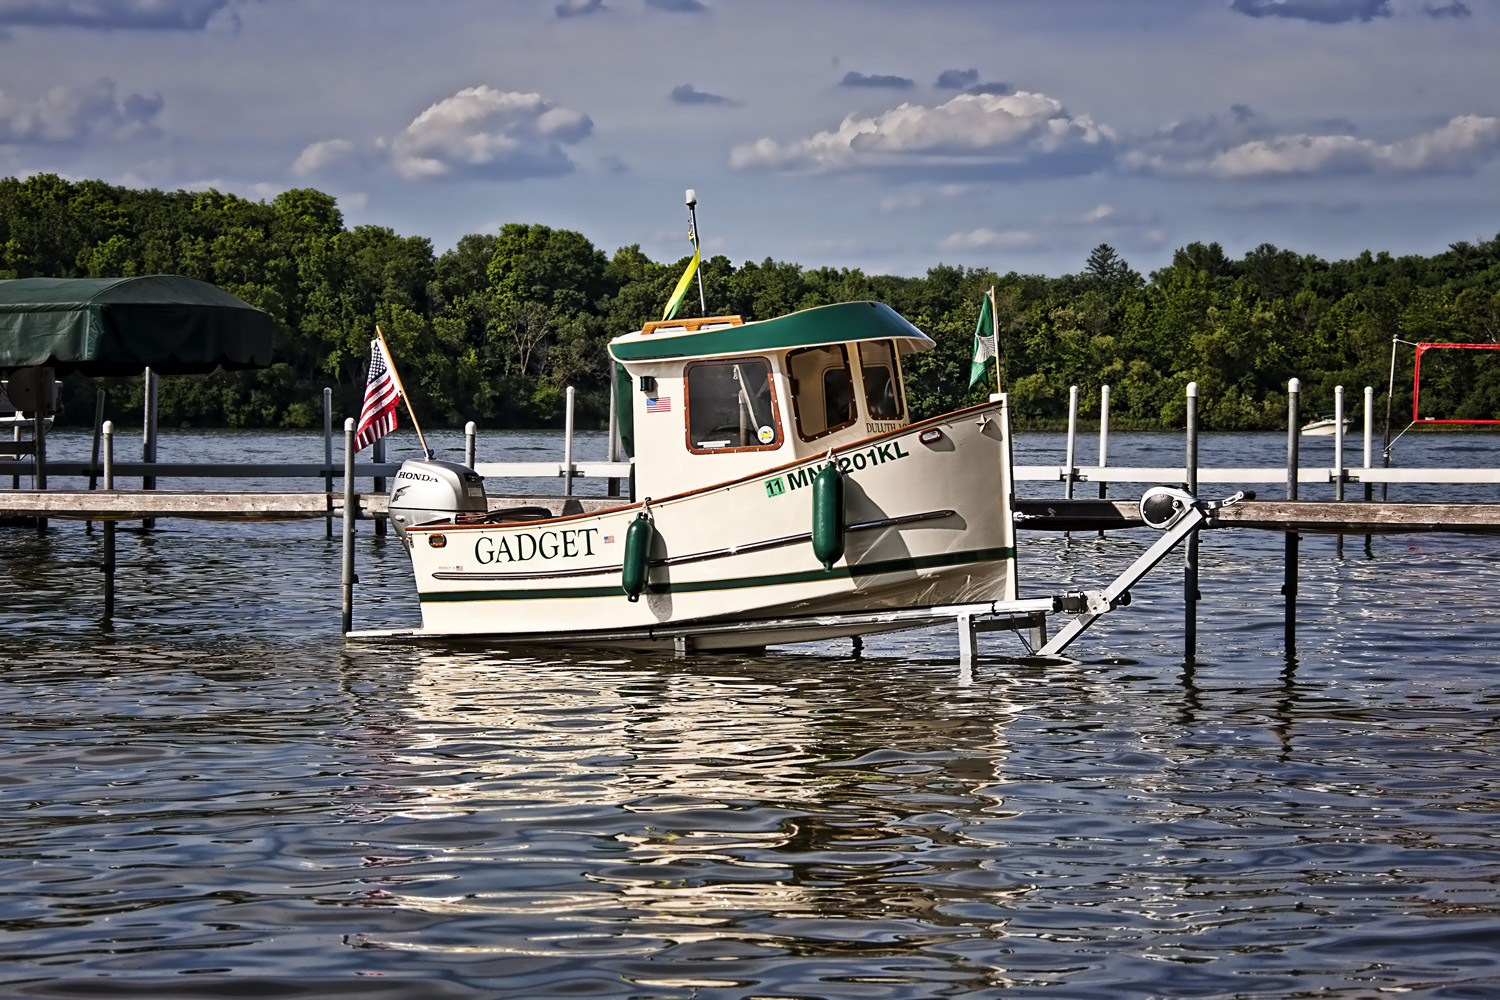 12' Deepwater Lift w/ 10' Hand Crafted Wood MicroTug Boat.